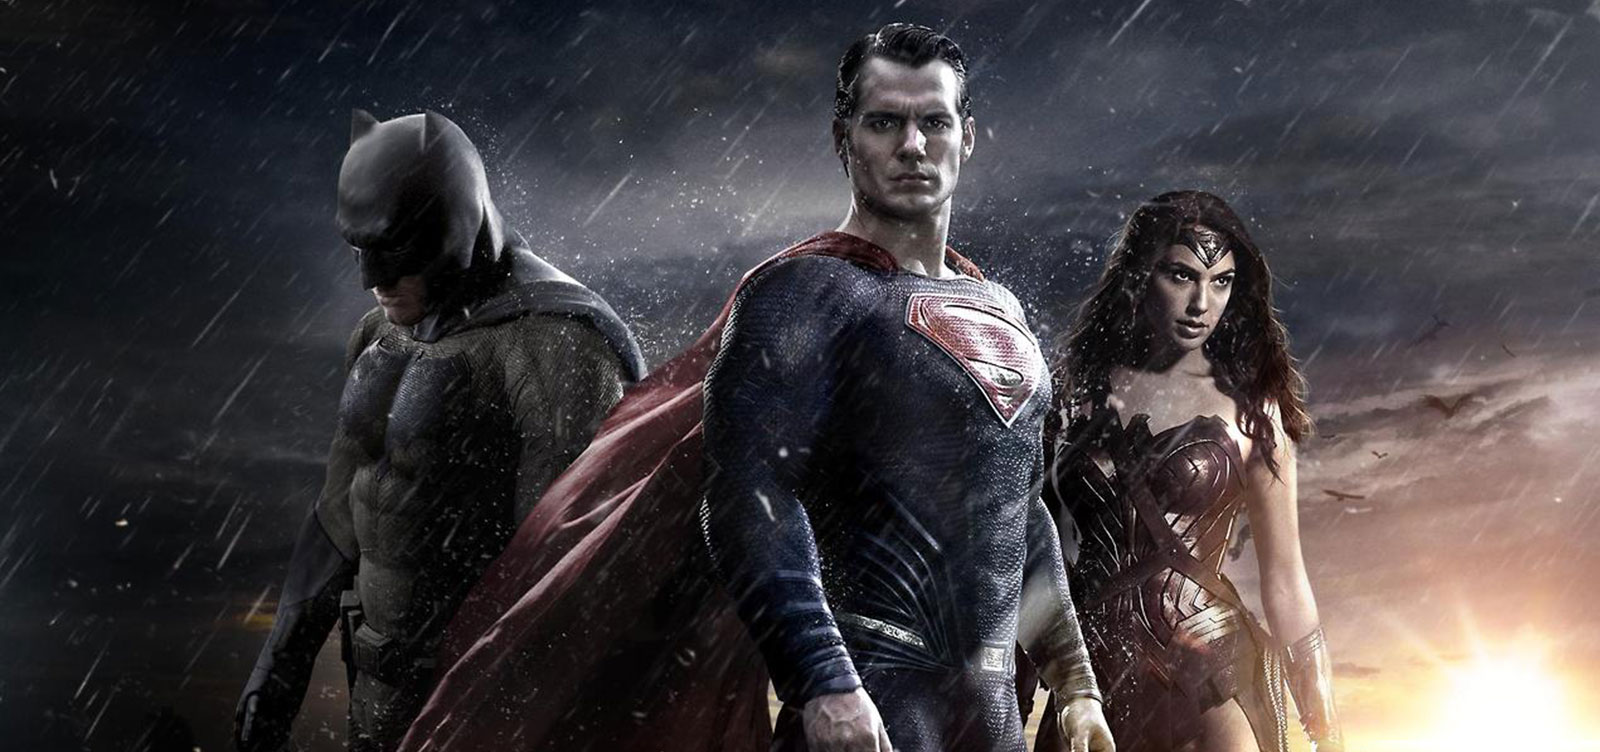 Batman_Vs_Superman_Images_v02